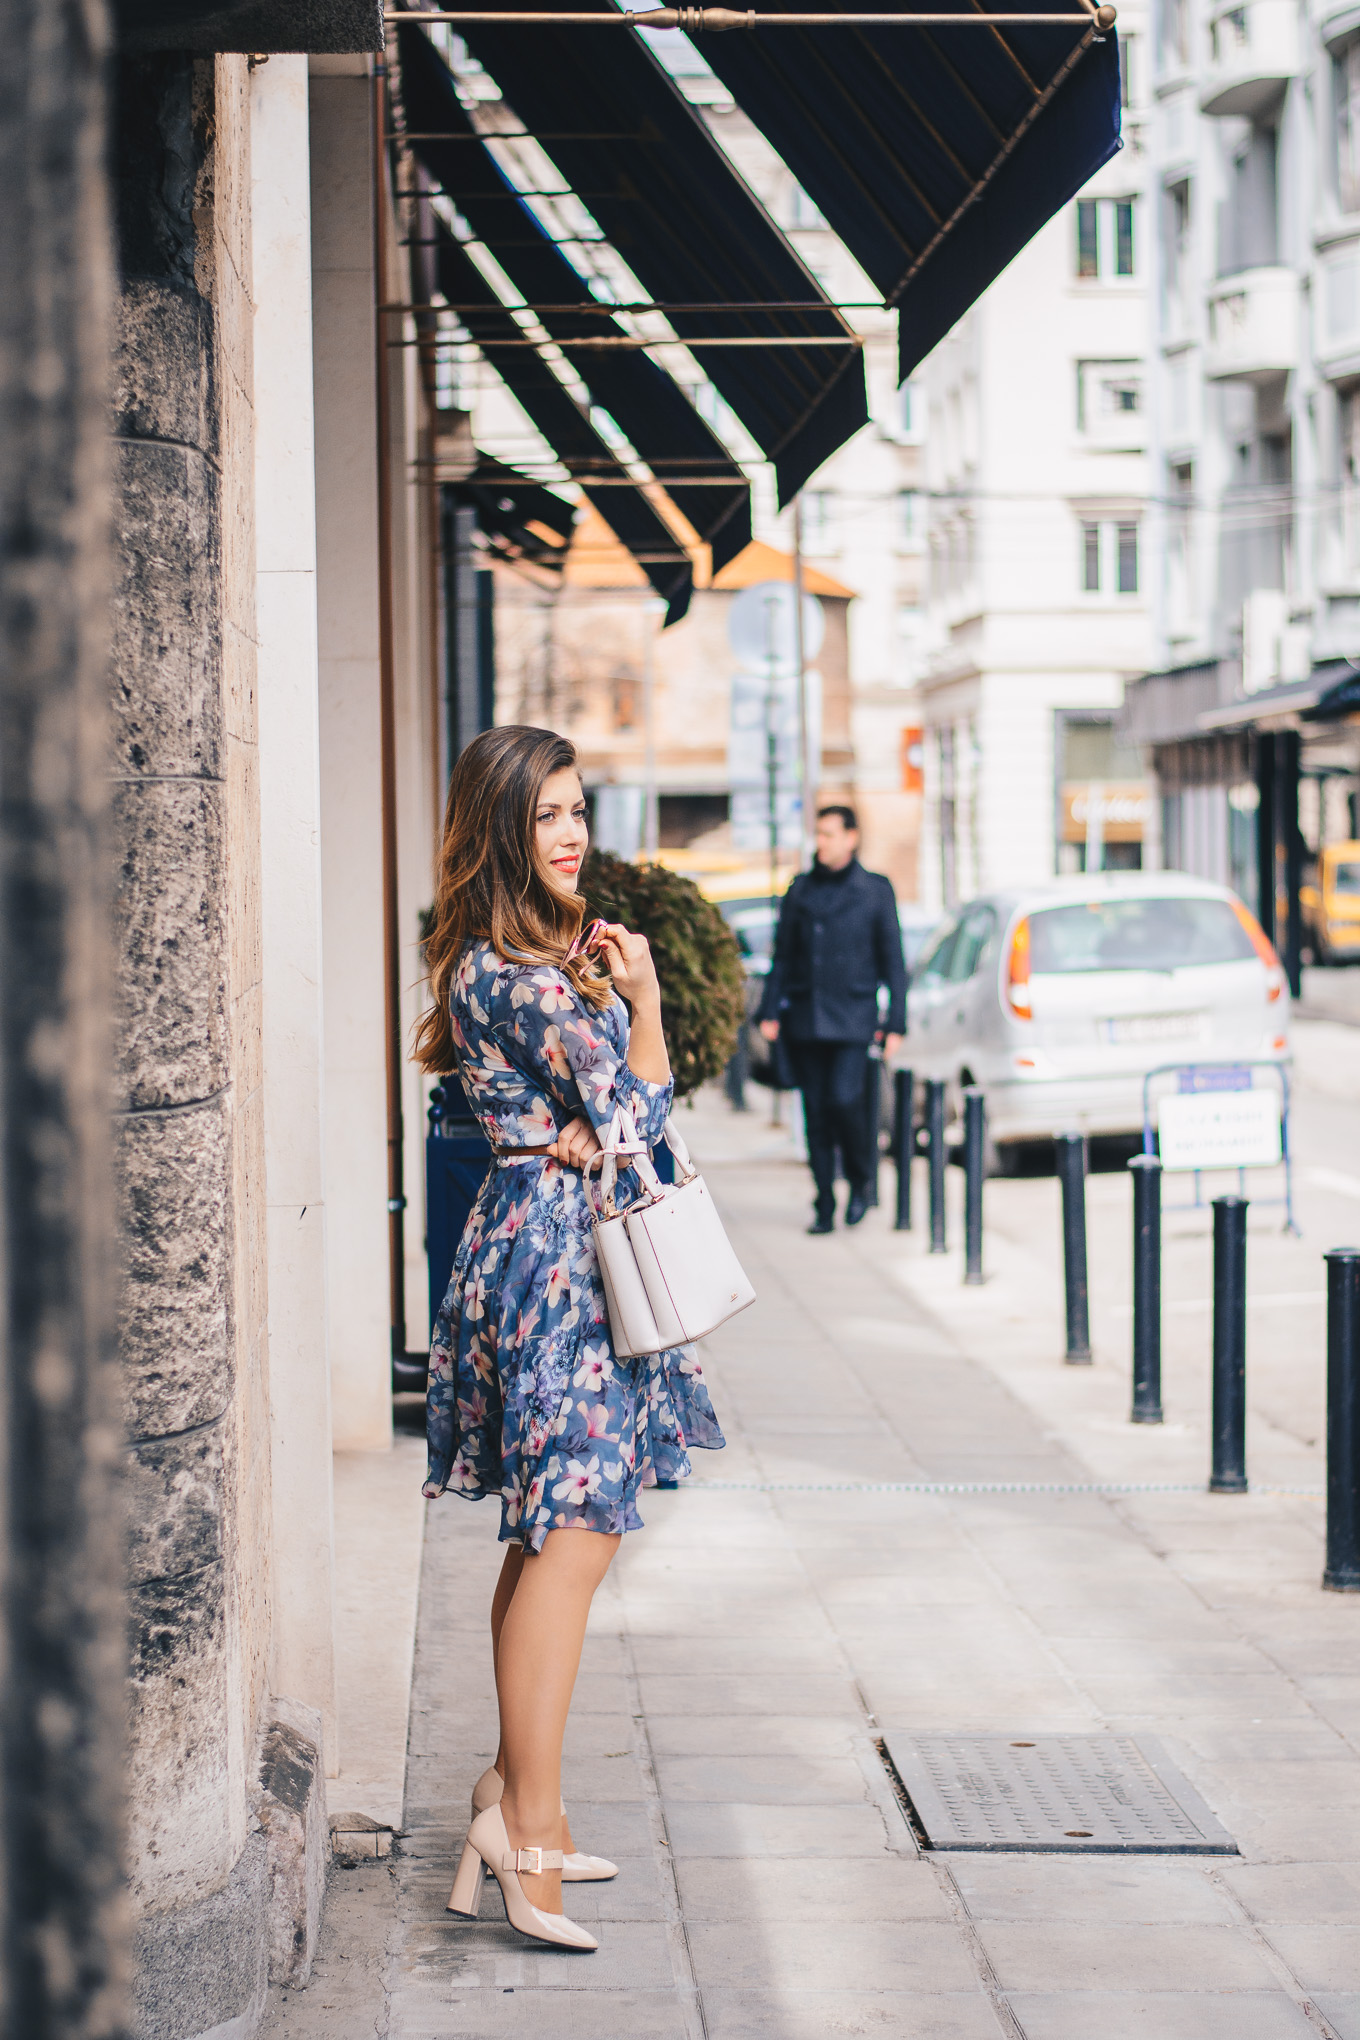 Fashion blogger in floral dress